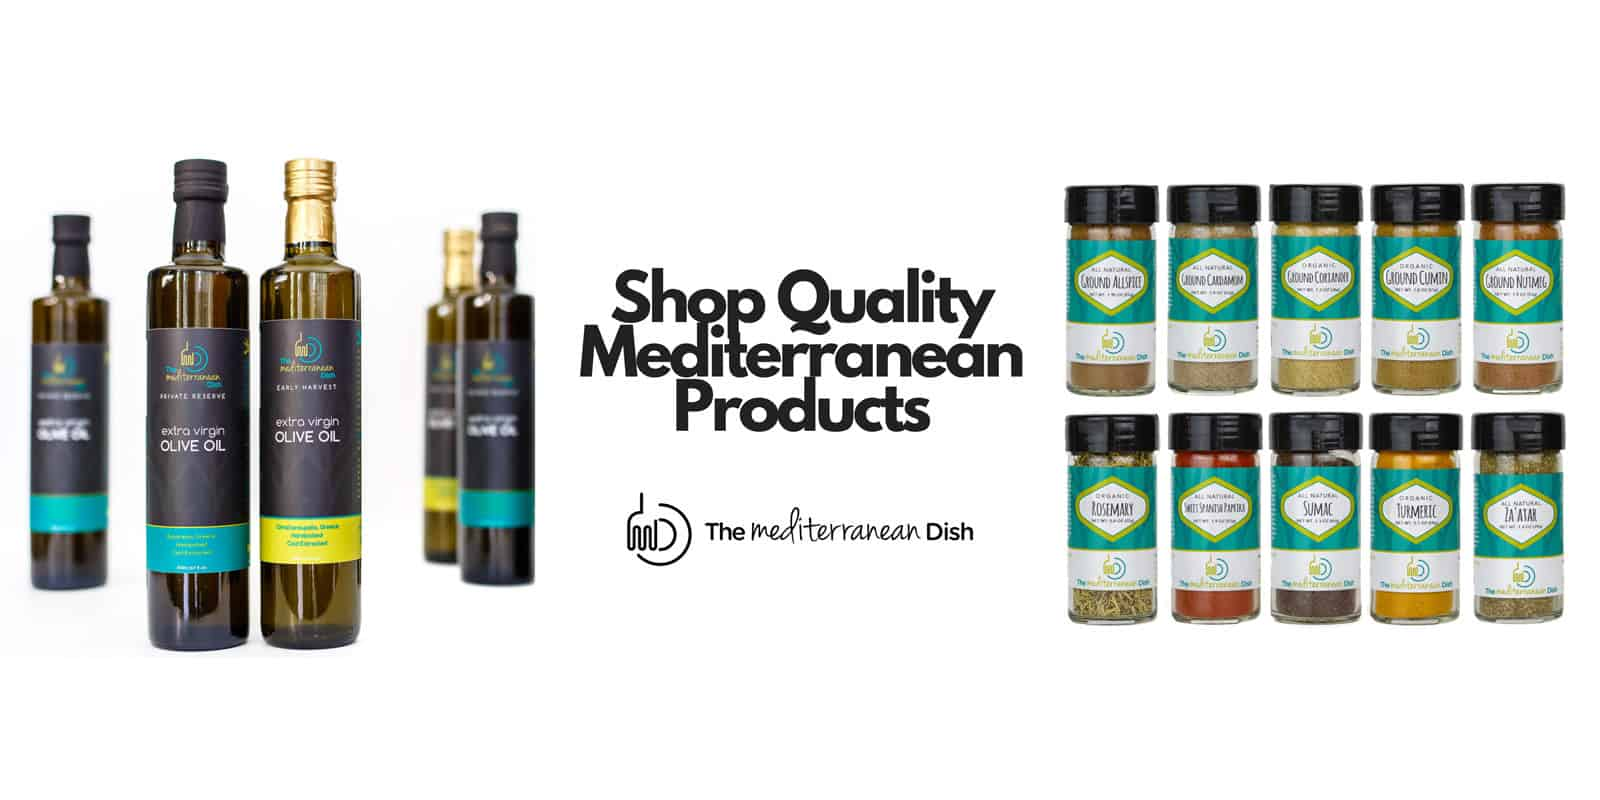 Mediterranean Dish spices and olive oils